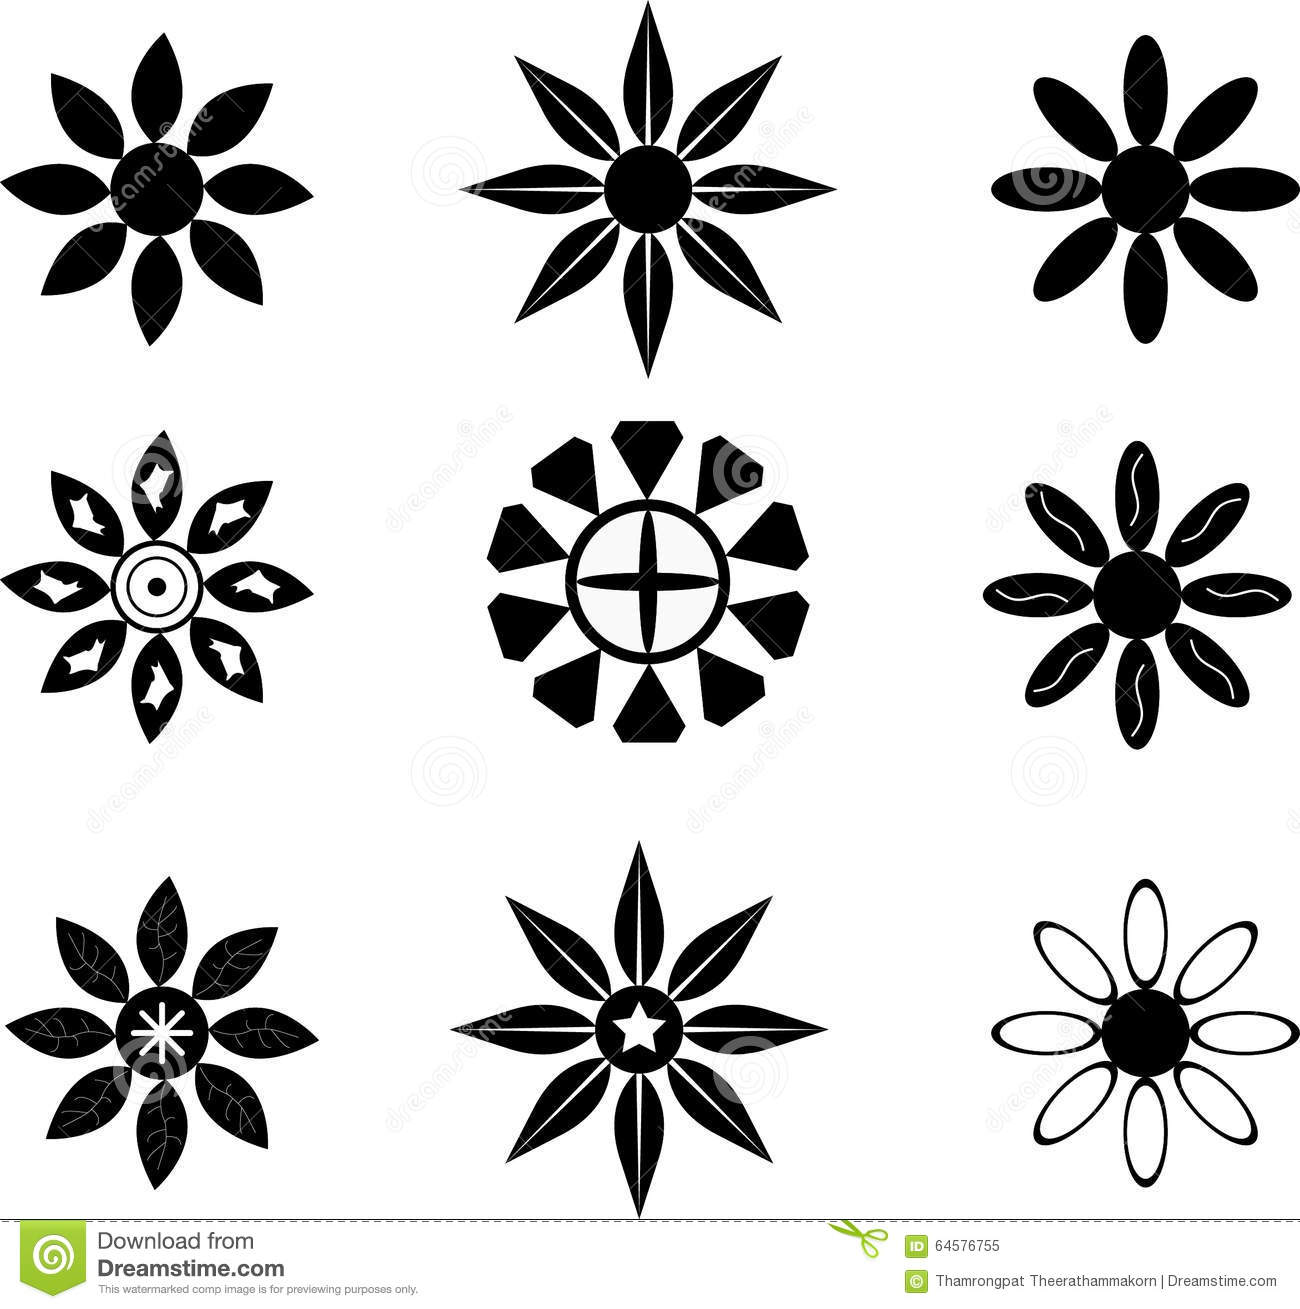 Flower Silhouette symbols stock illustration Image of illustration